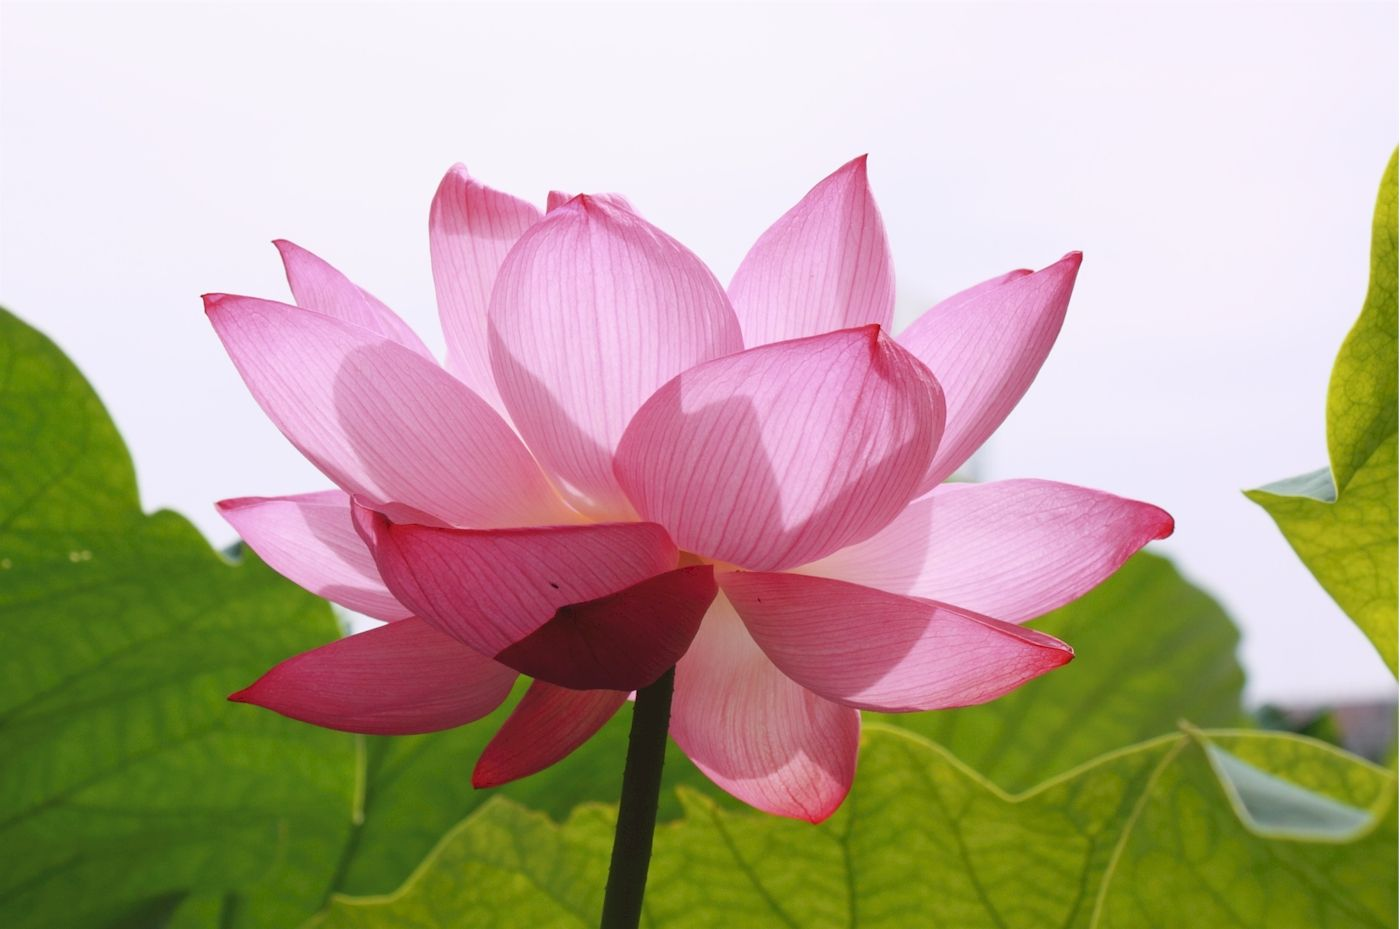 Lotus my new symbol of inner peace movement pinterest lotus the lotus flower is a symbol of finding strength through adversity the seeds of the lotus push up through the mud to reach the surface izmirmasajfo Image collections